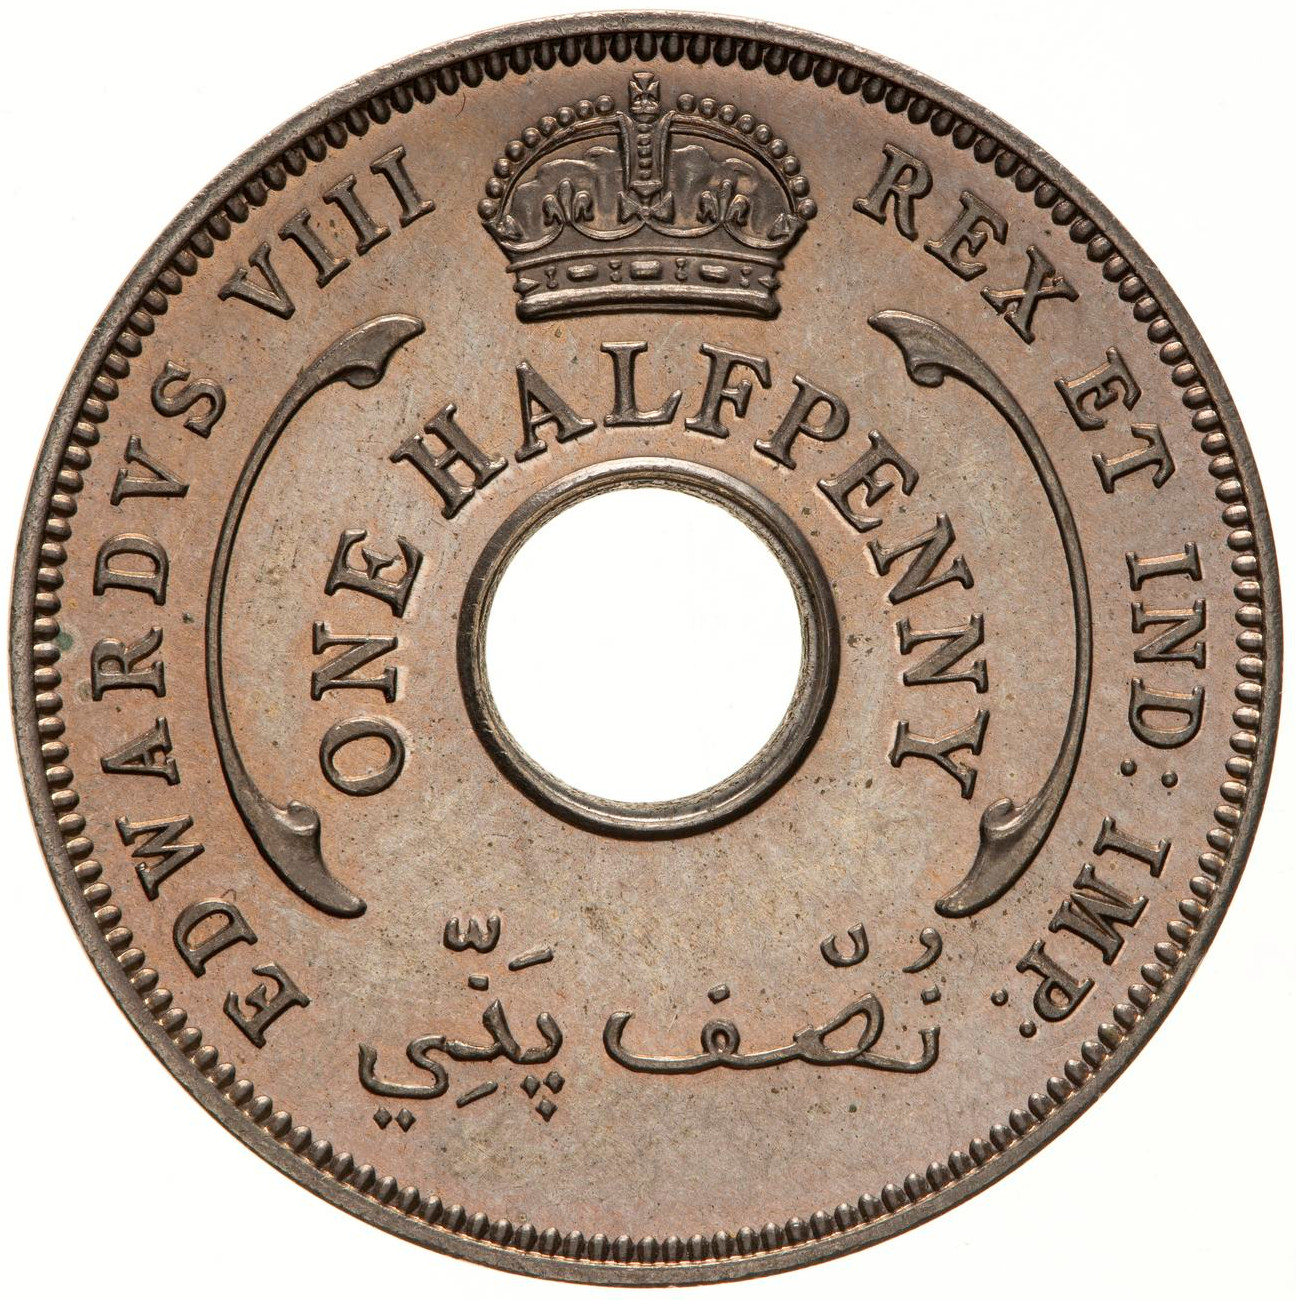 Halfpenny 1936 Edward VIII: Photo Proof Coin - 1/2 Penny, British West Africa, 1936